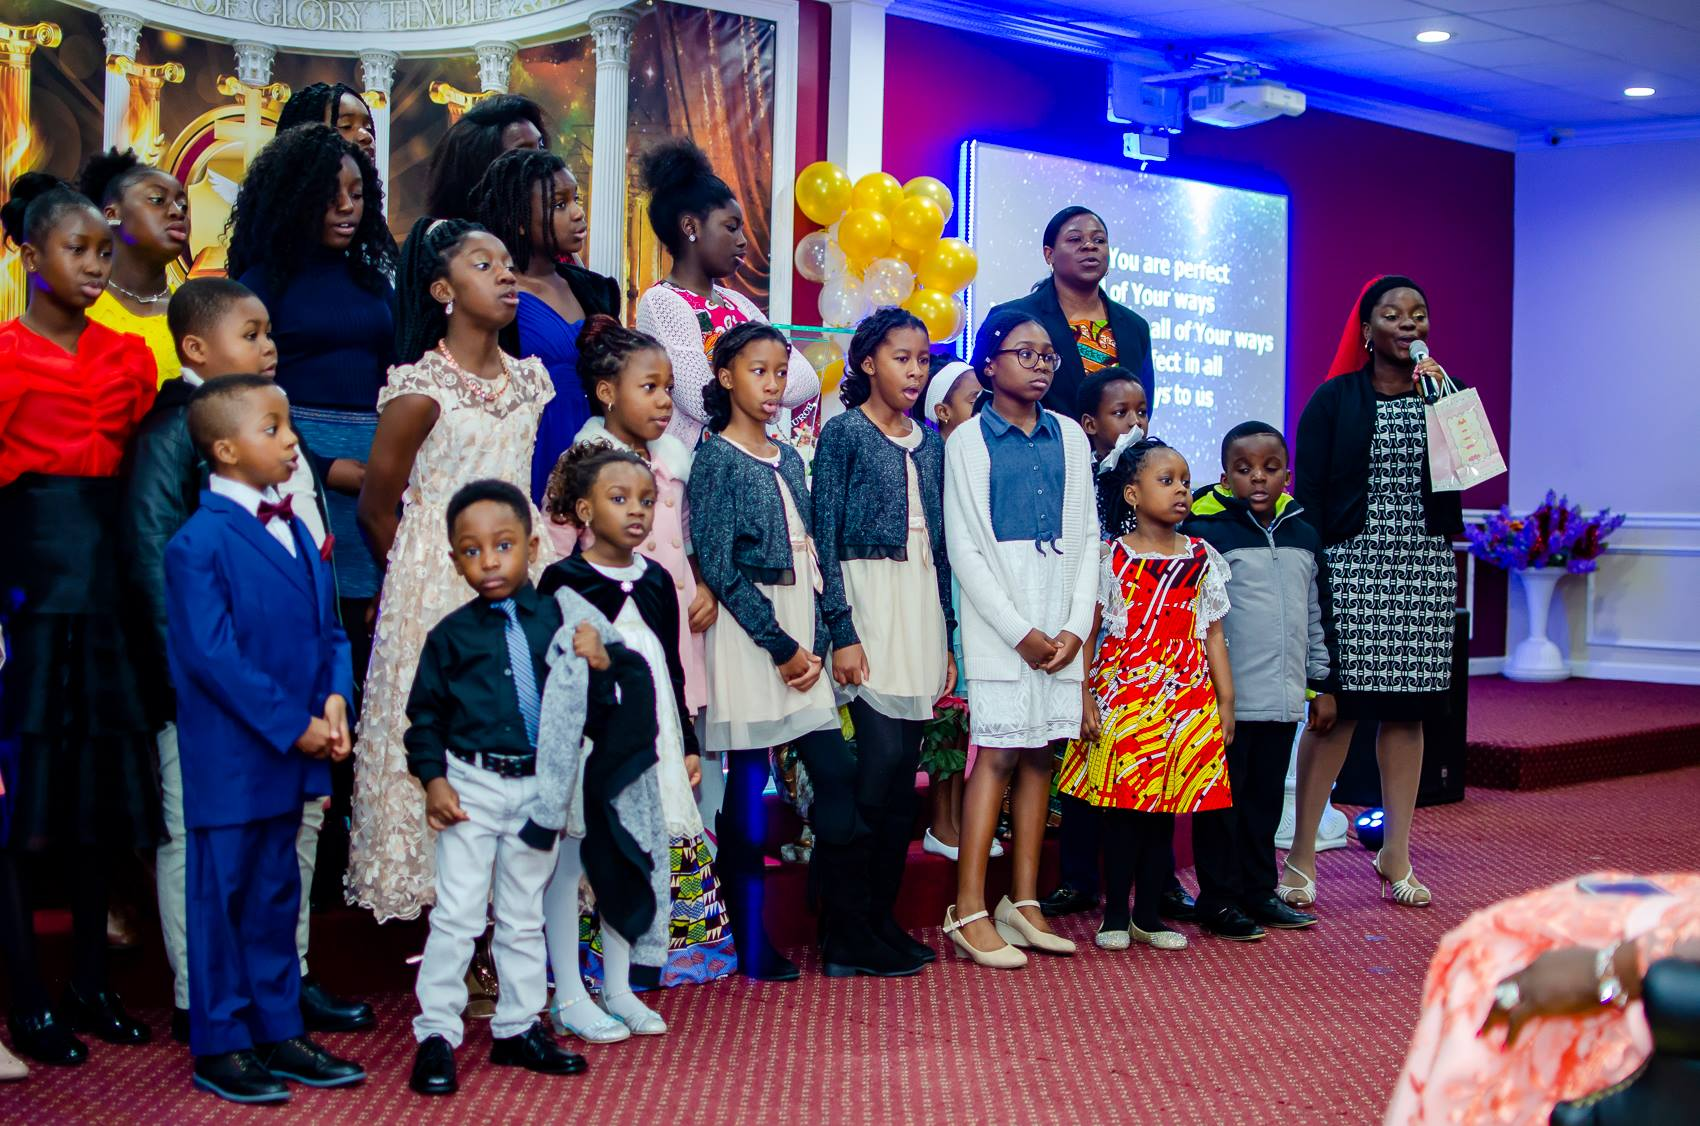 Youth/Children's Ministry